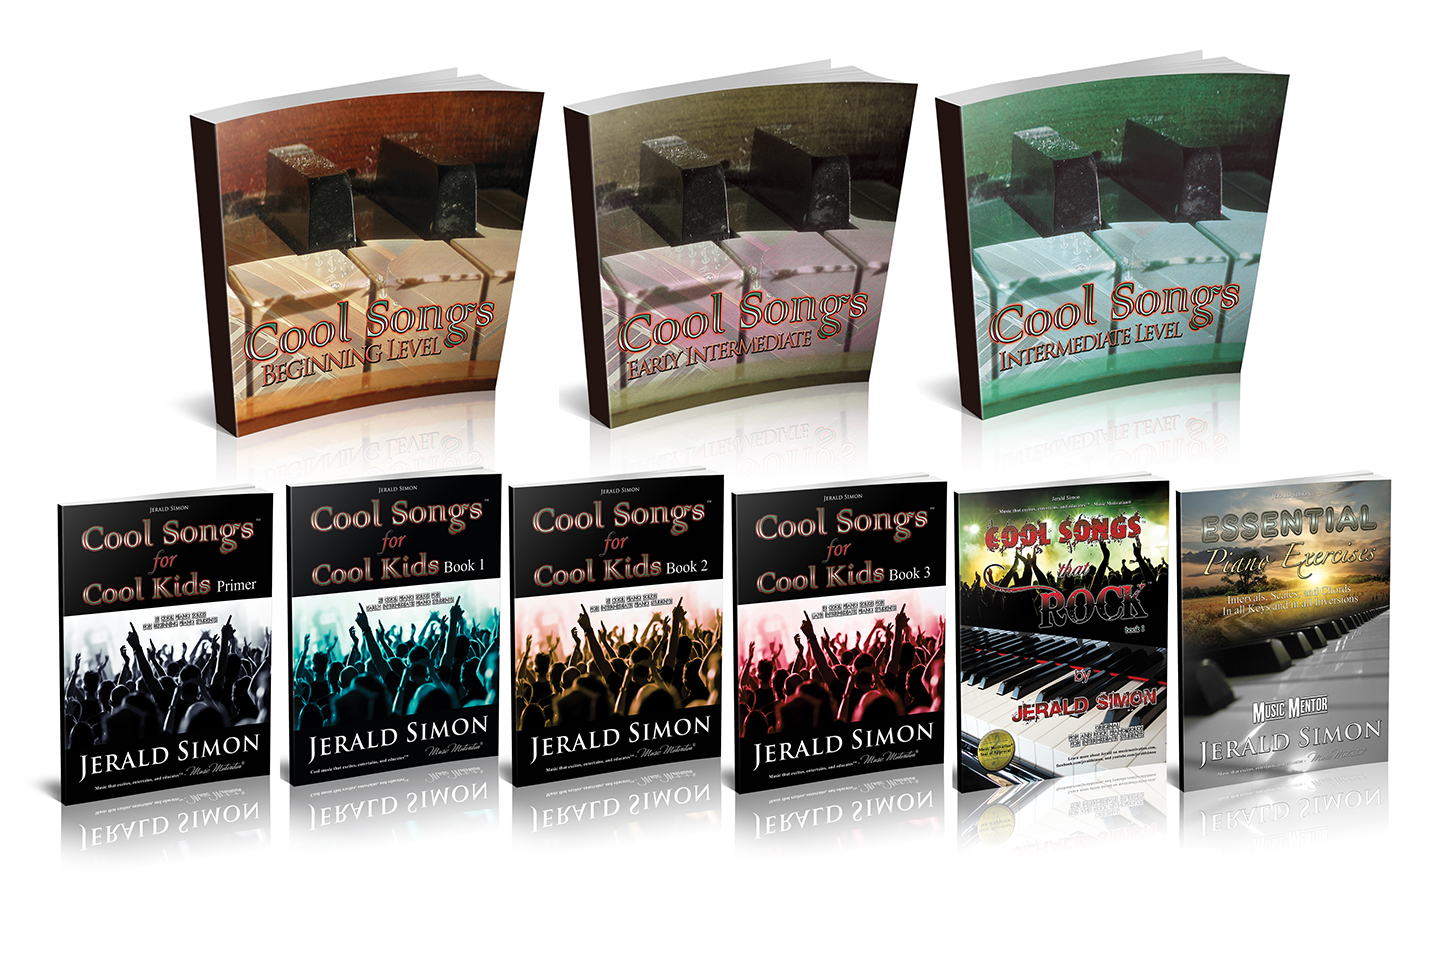 COOL SONGS series by Jerald Simon - published by Music Motivation